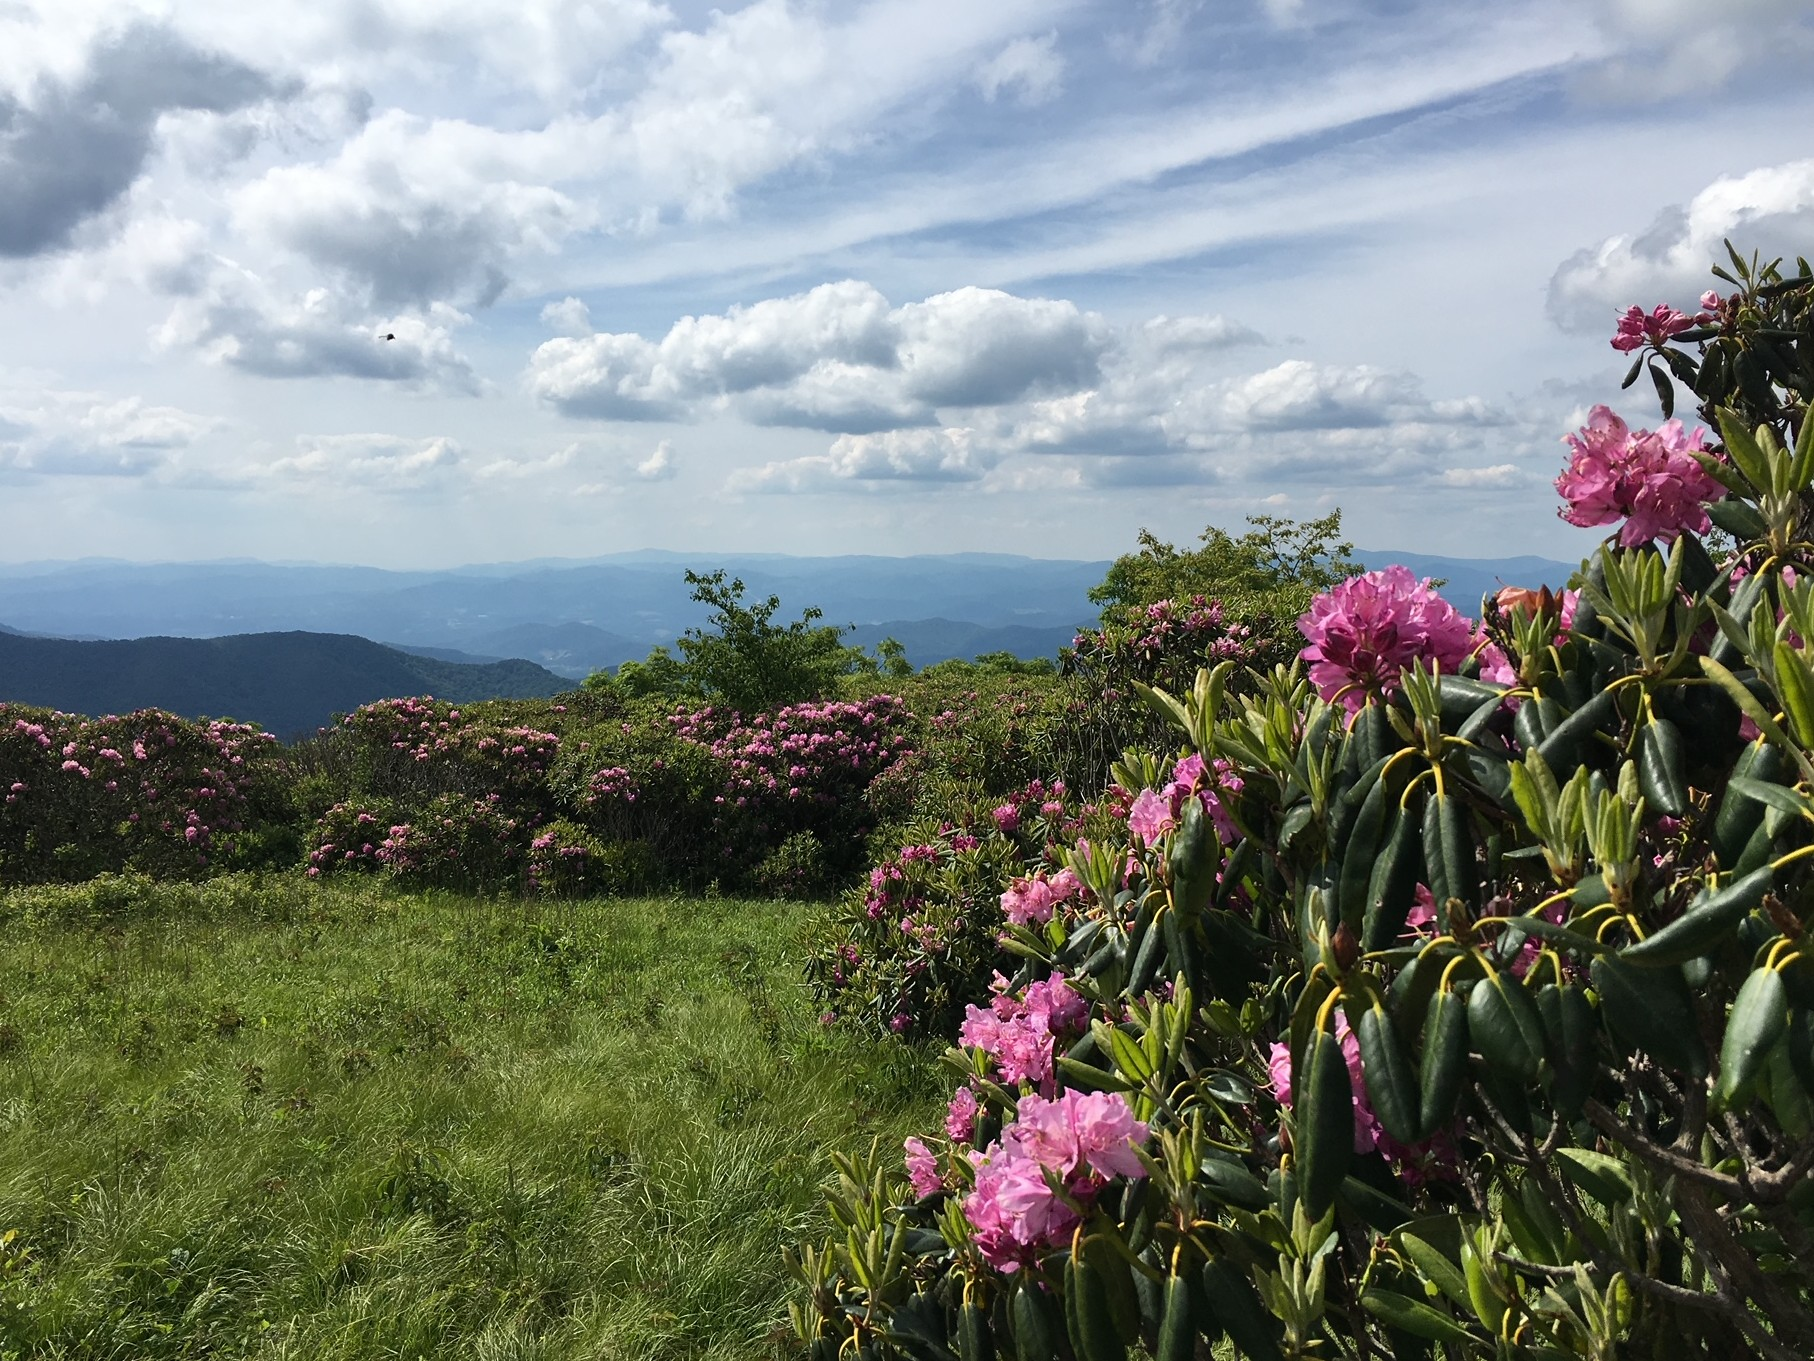 Flowers in Bloom at Craggy Gardens